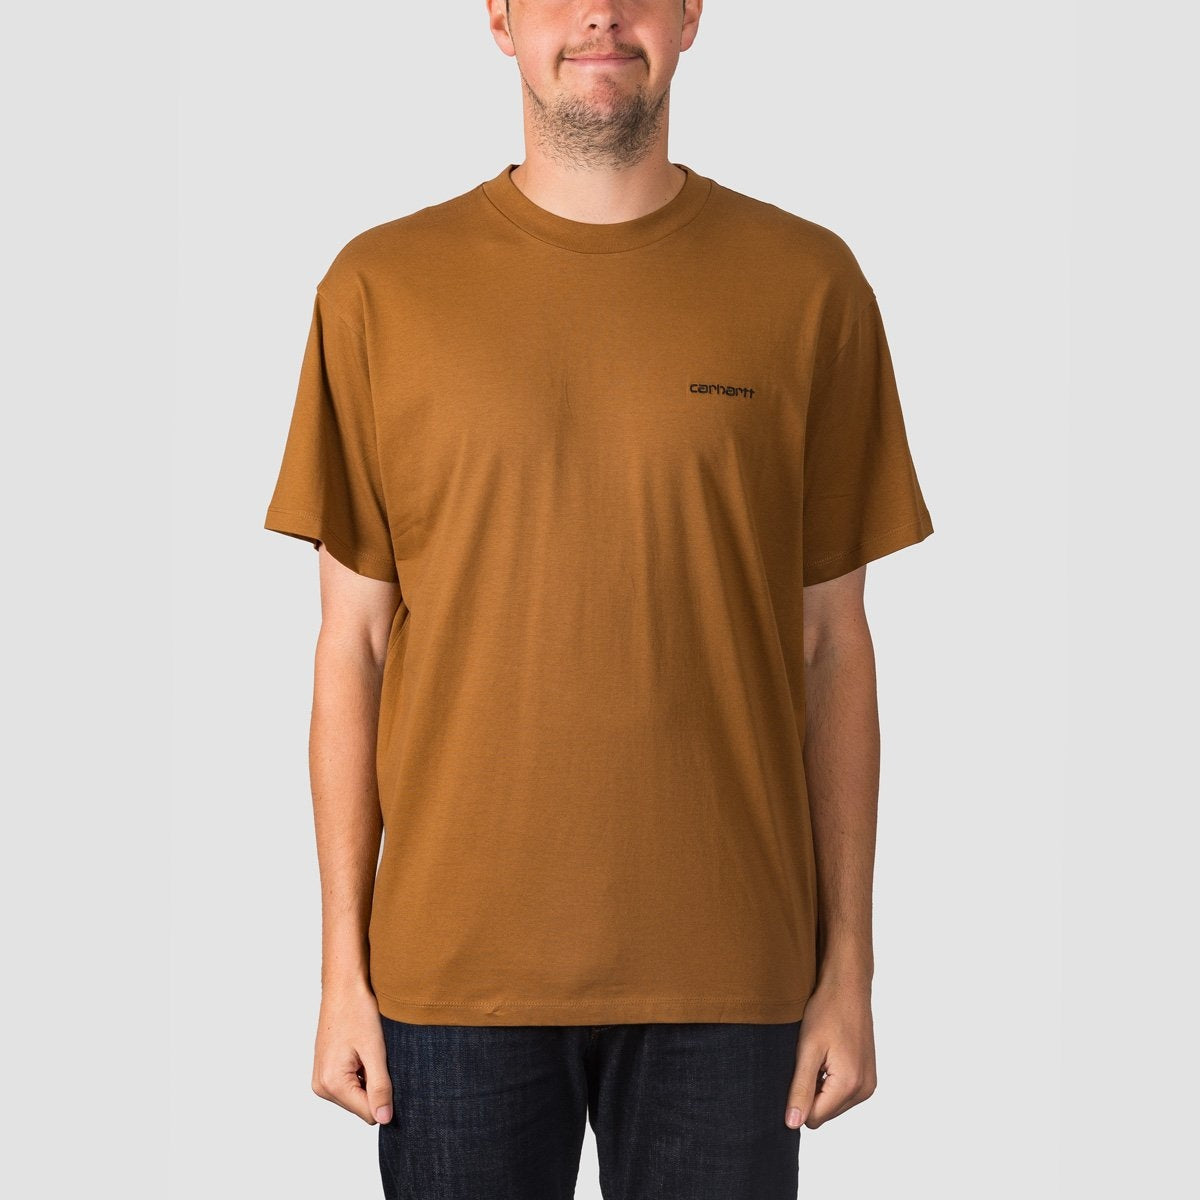 Carhartt WIP Script Embroidery Tee Hamilton Brown/Black - Clothing